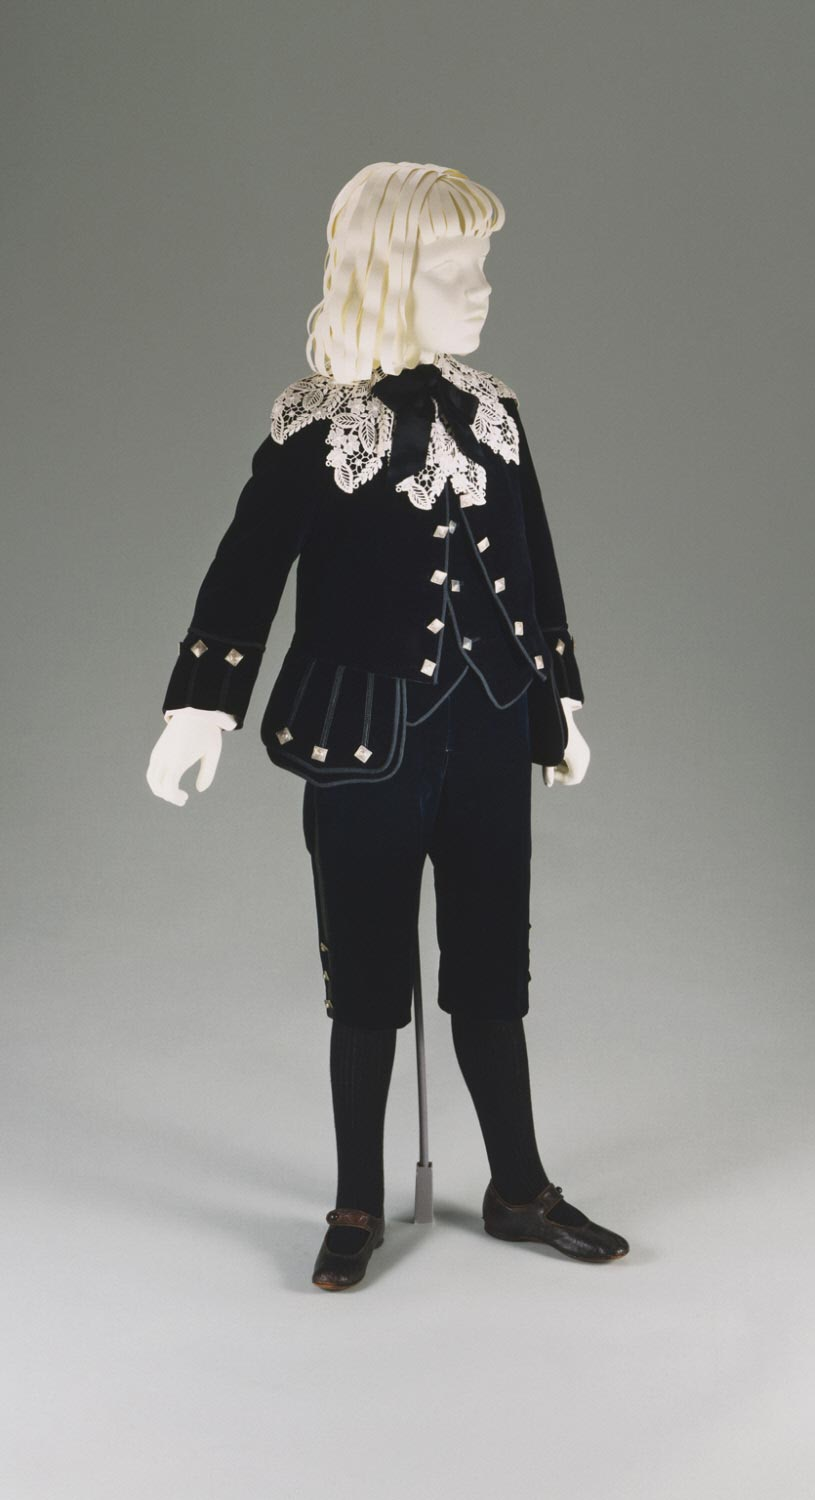 Boy's Suit: Jacket, Waistcoat, and Short Trousers